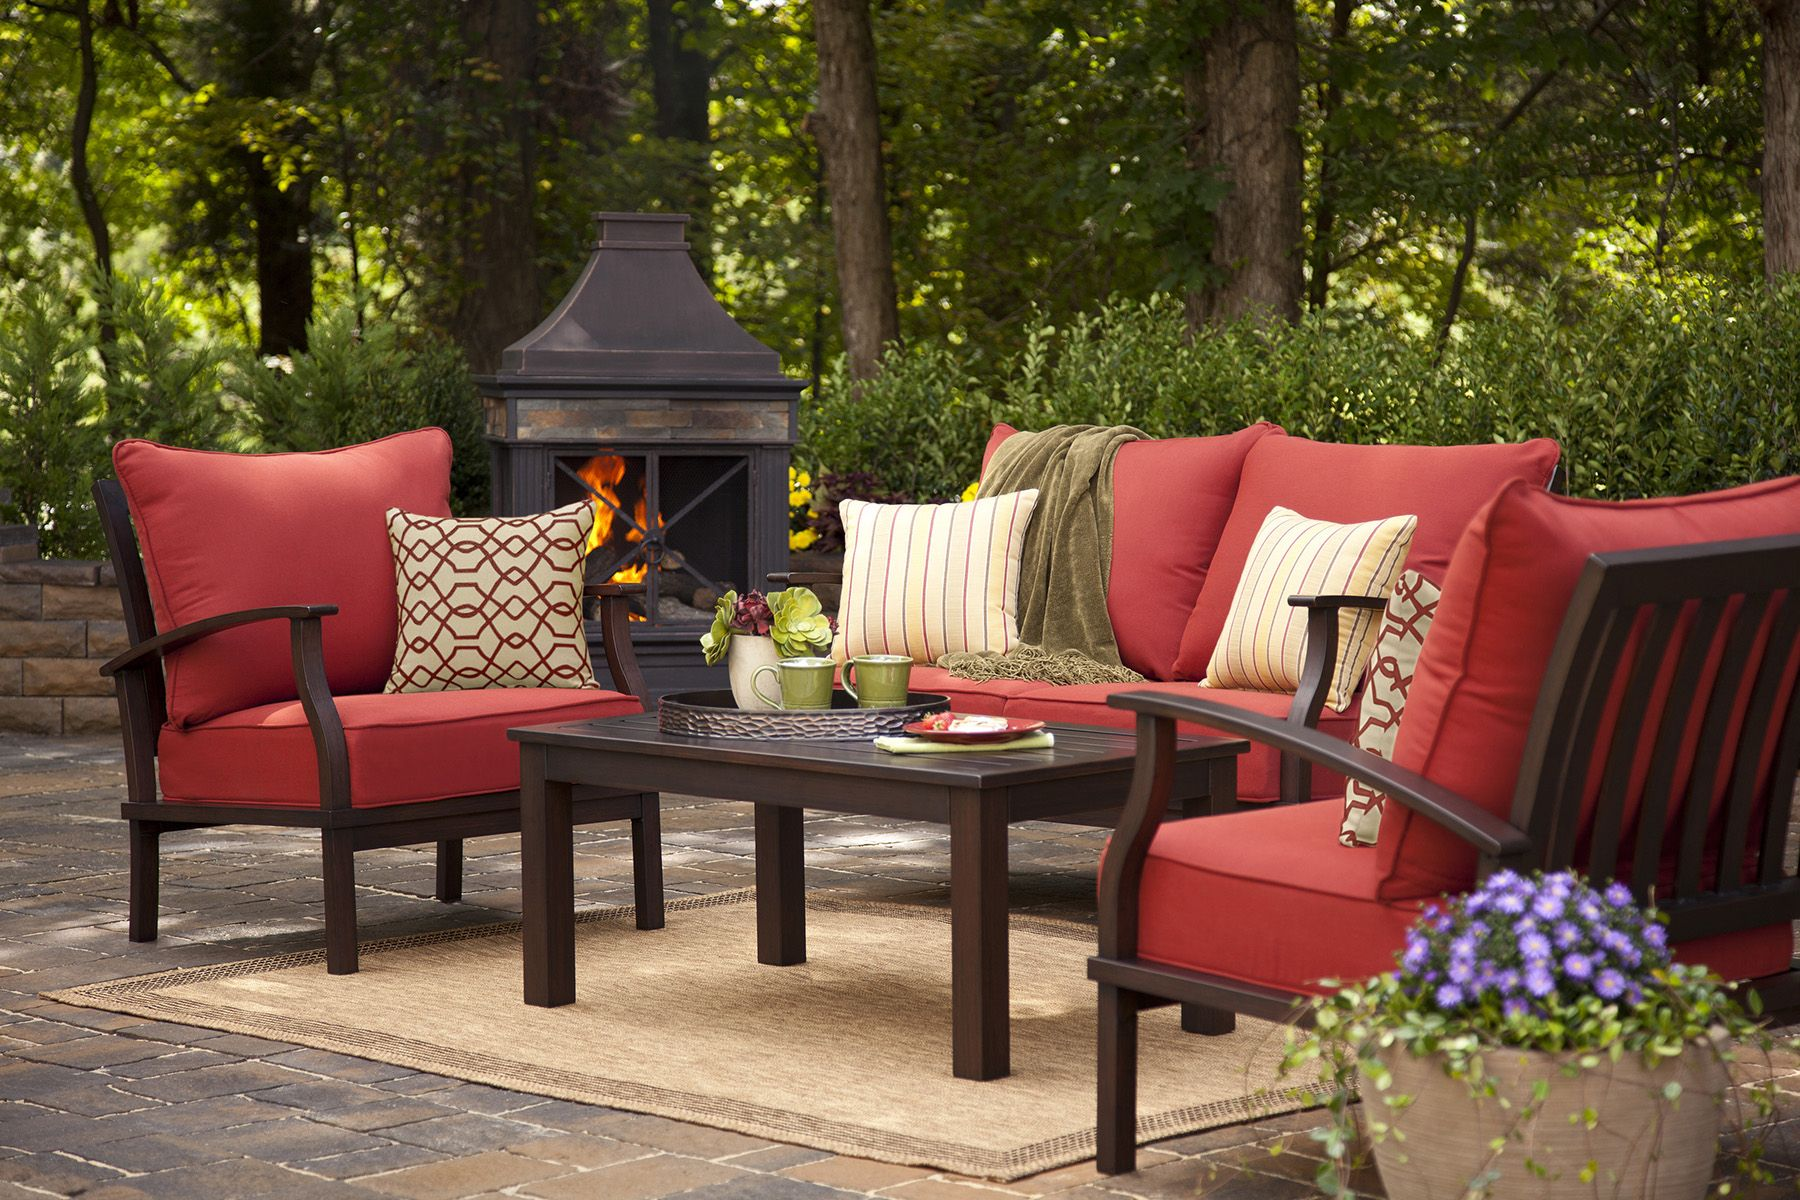 Bring Comfort And Style Patio With Allen